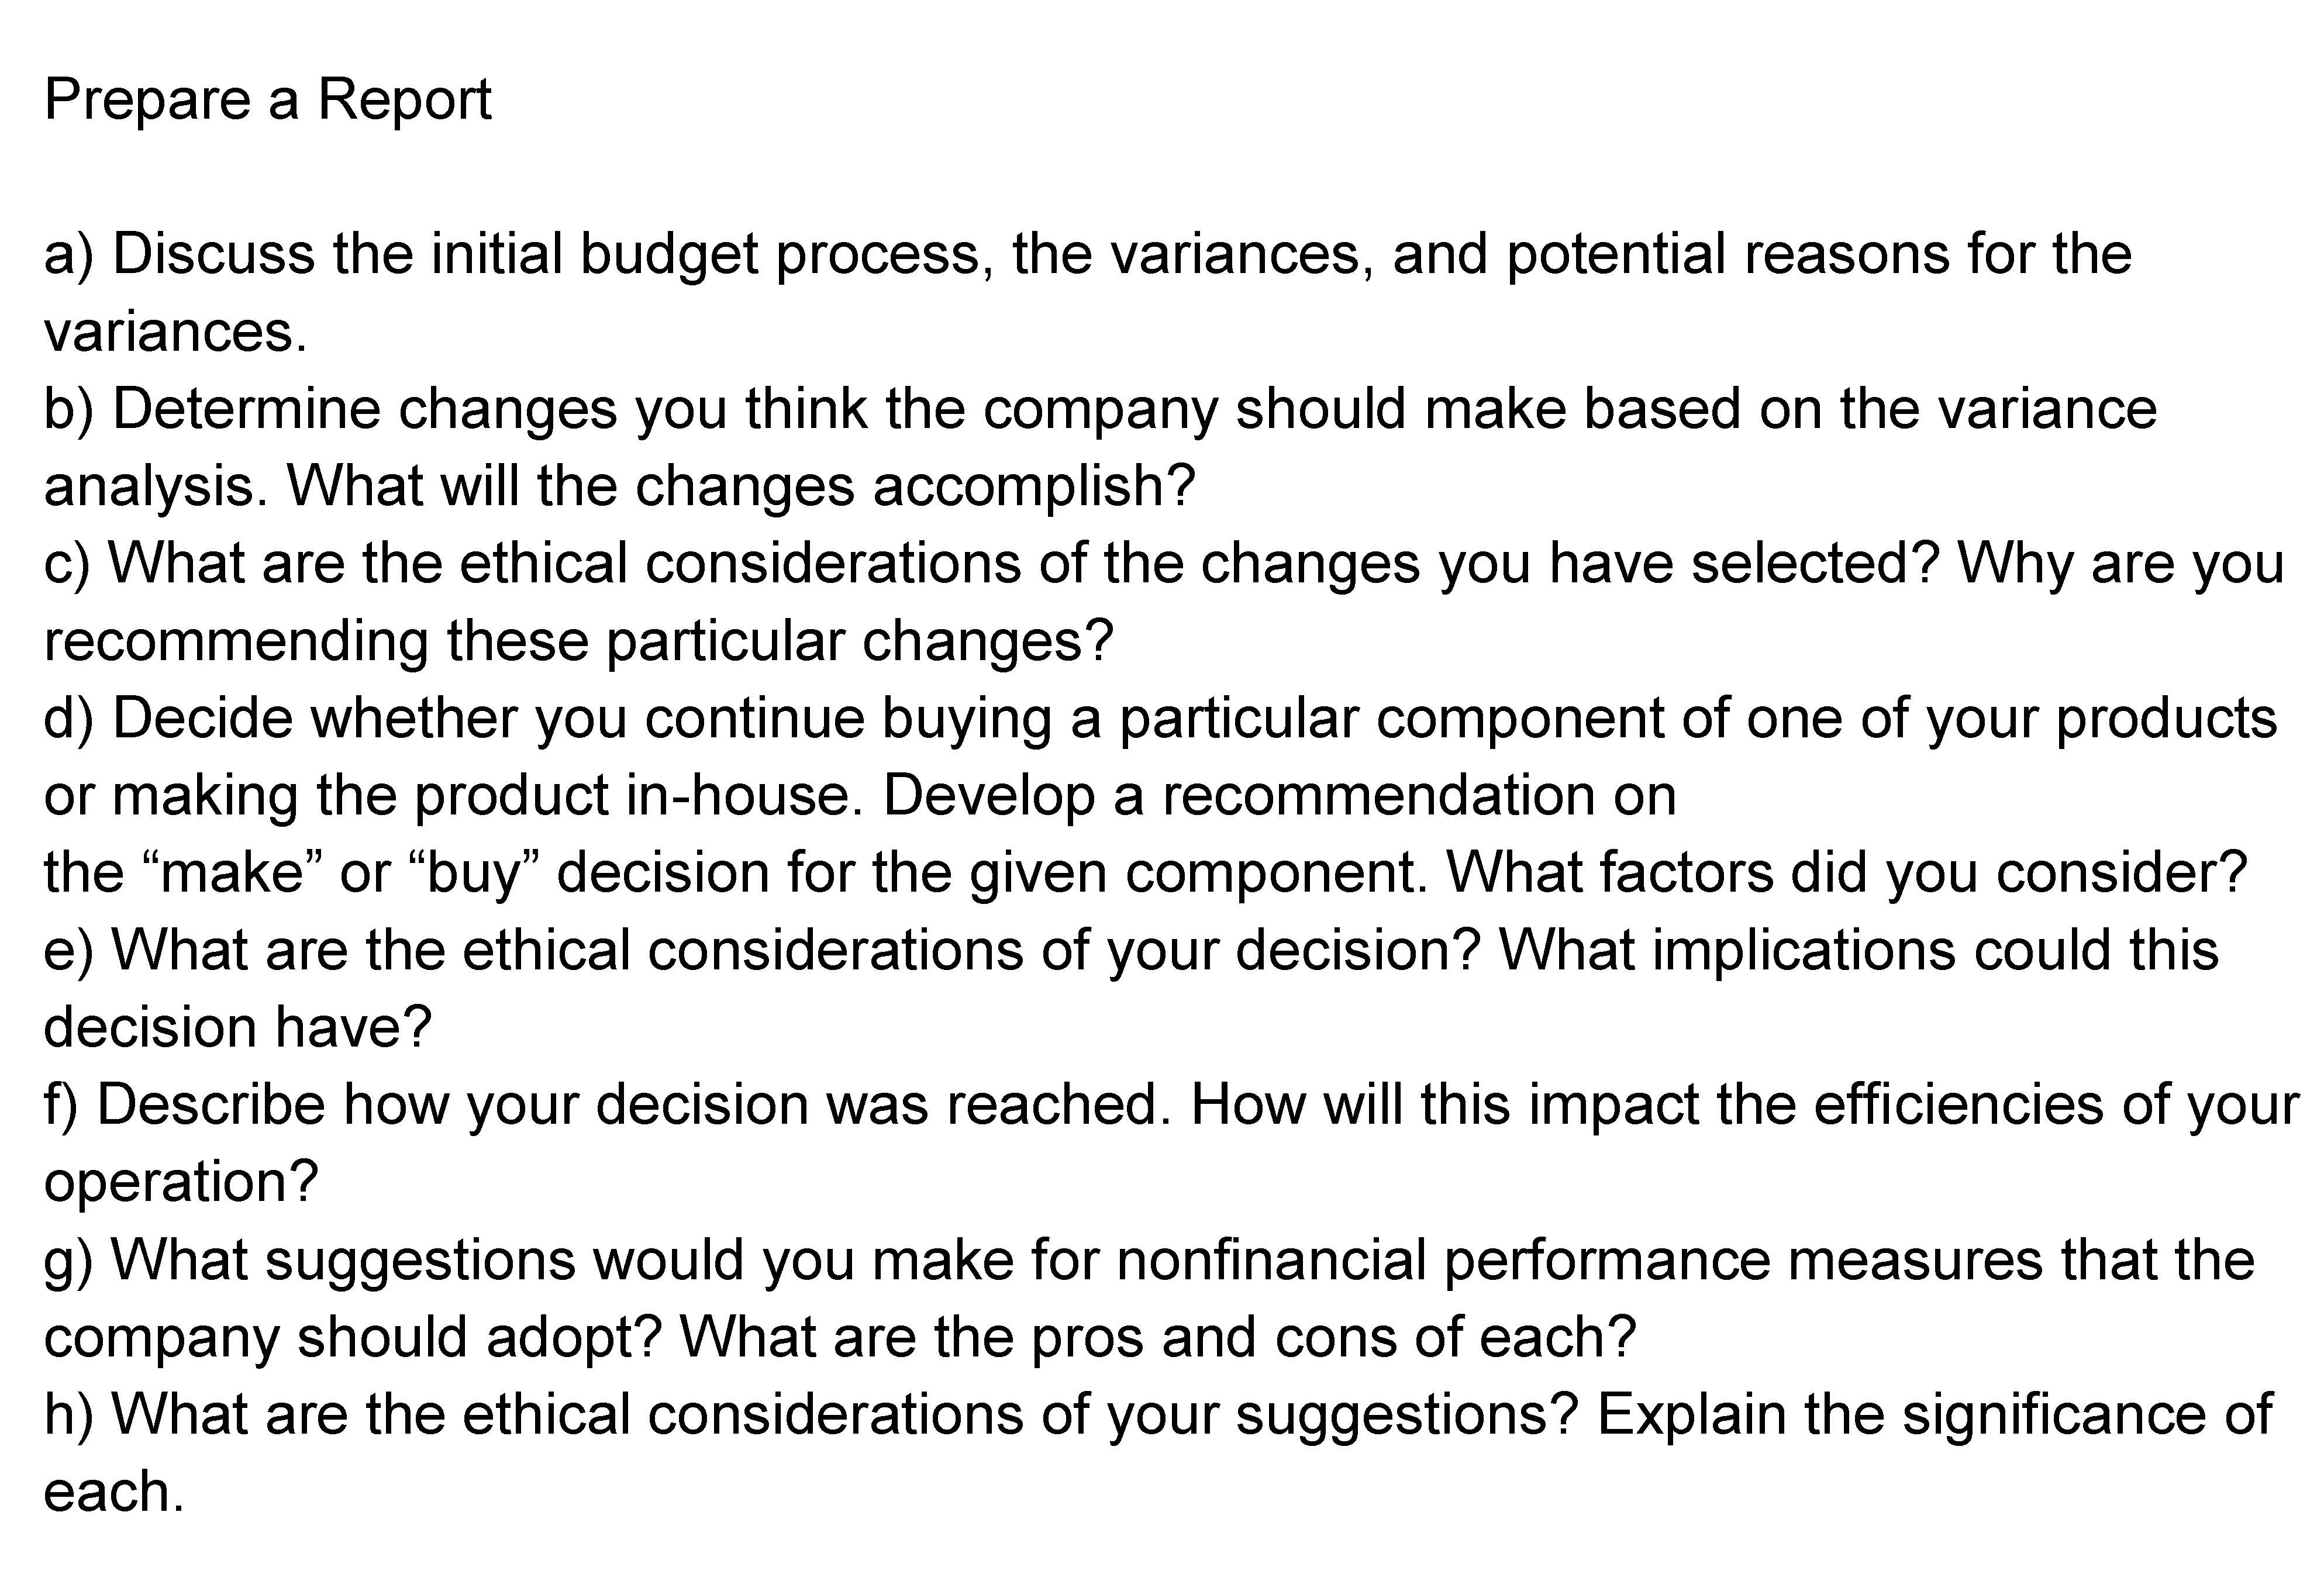 Peyton Approved Budget Discussion (780 words)